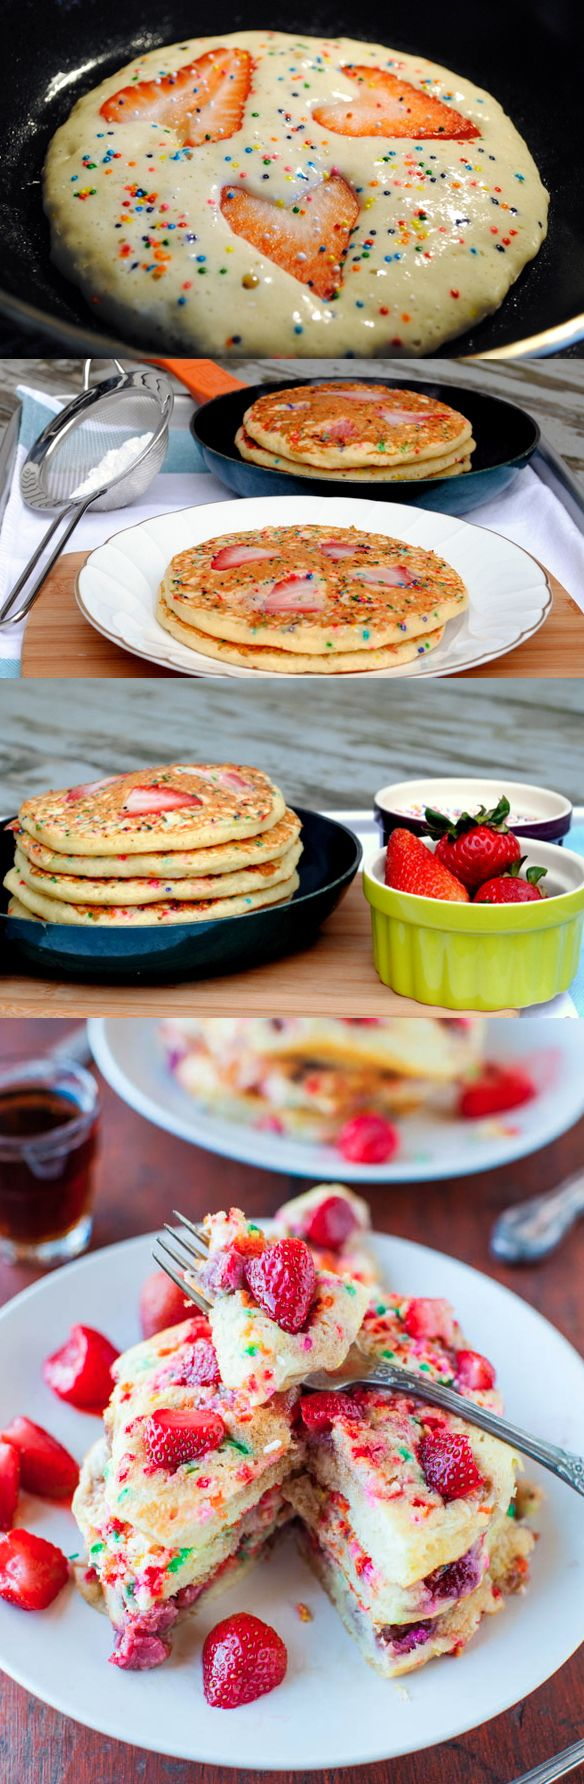 Make these for Breakfast: Strawberry Funfetti Pancakes! Perfect for birthday mornings! #recipe